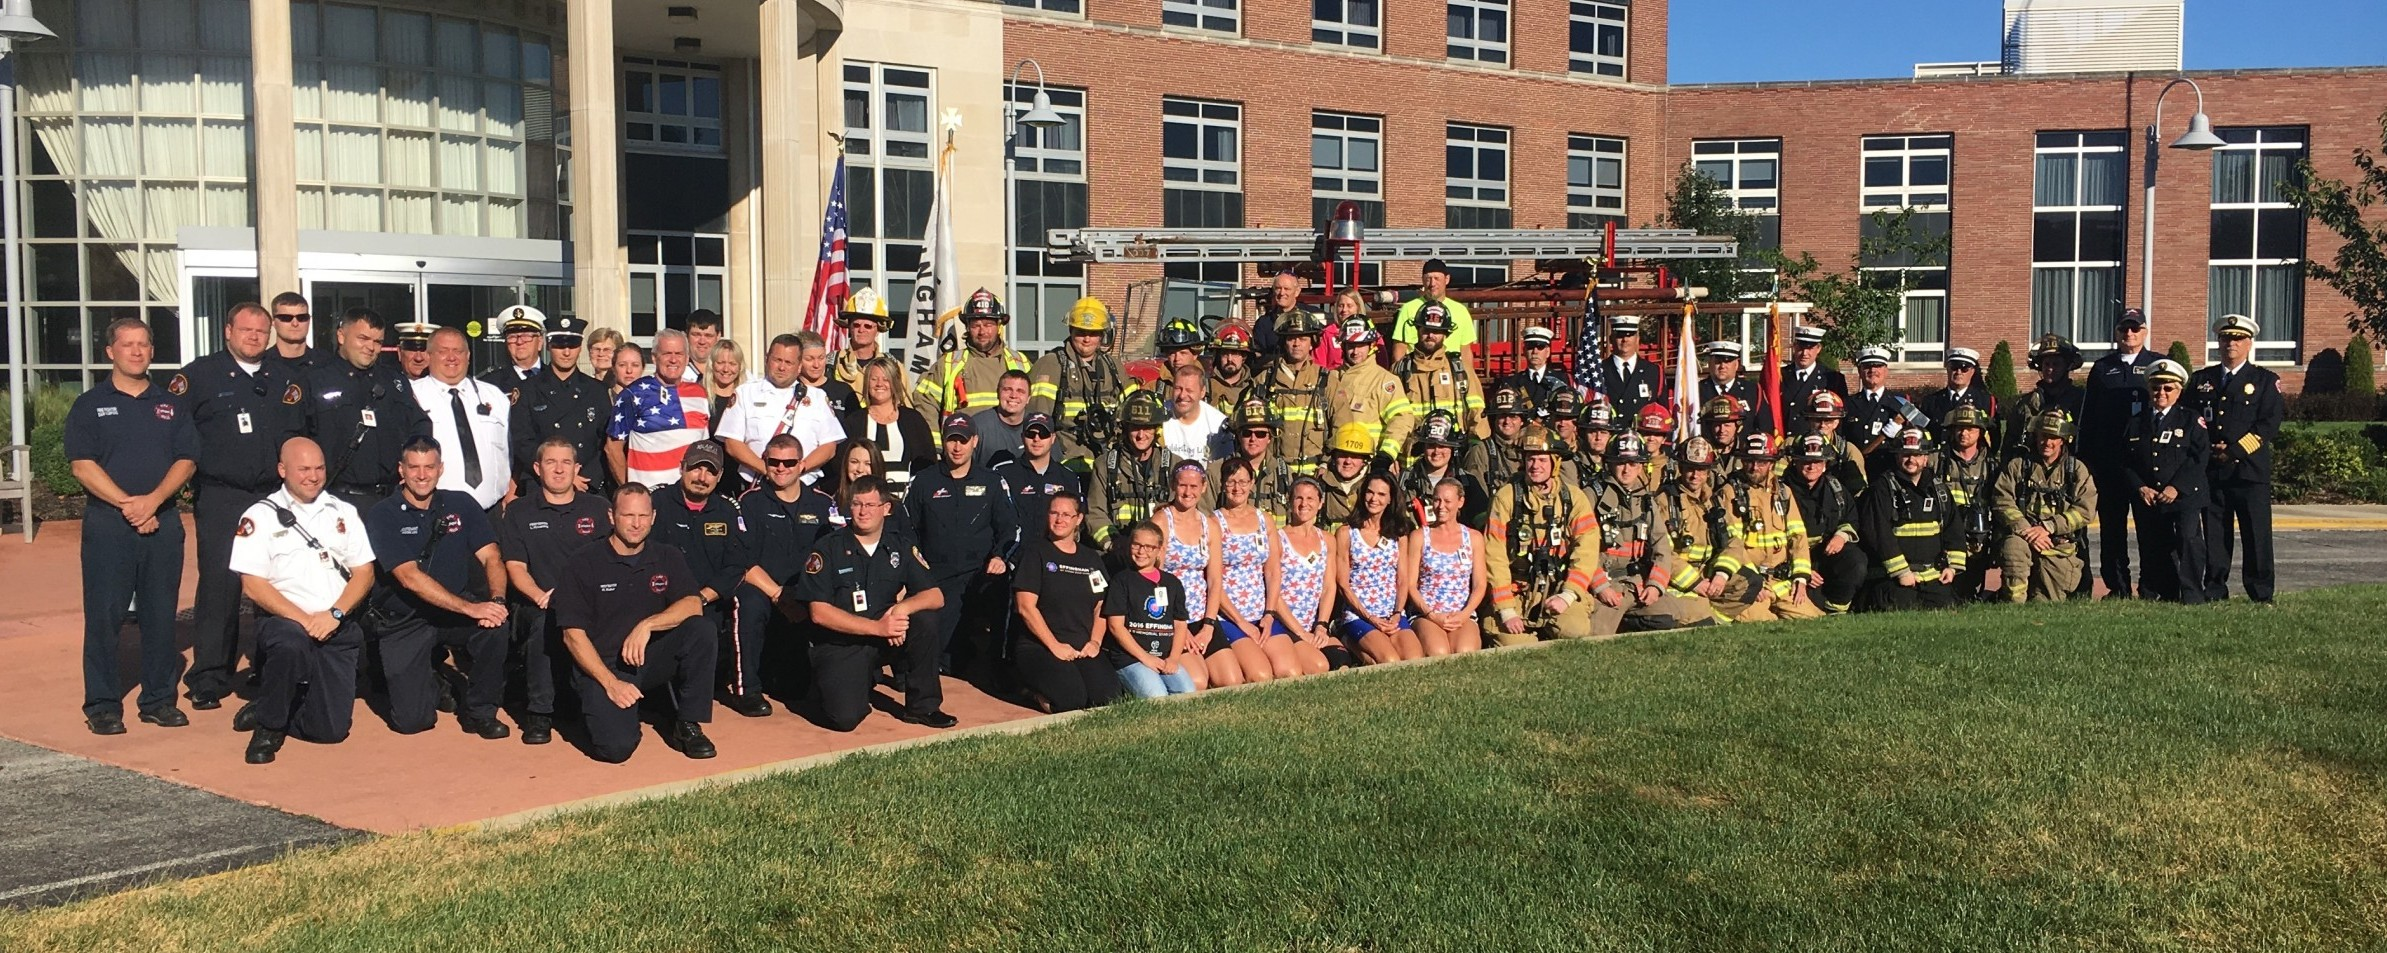 Local Fire Departments Climb 110 Stories to Honor 9/11 Victims